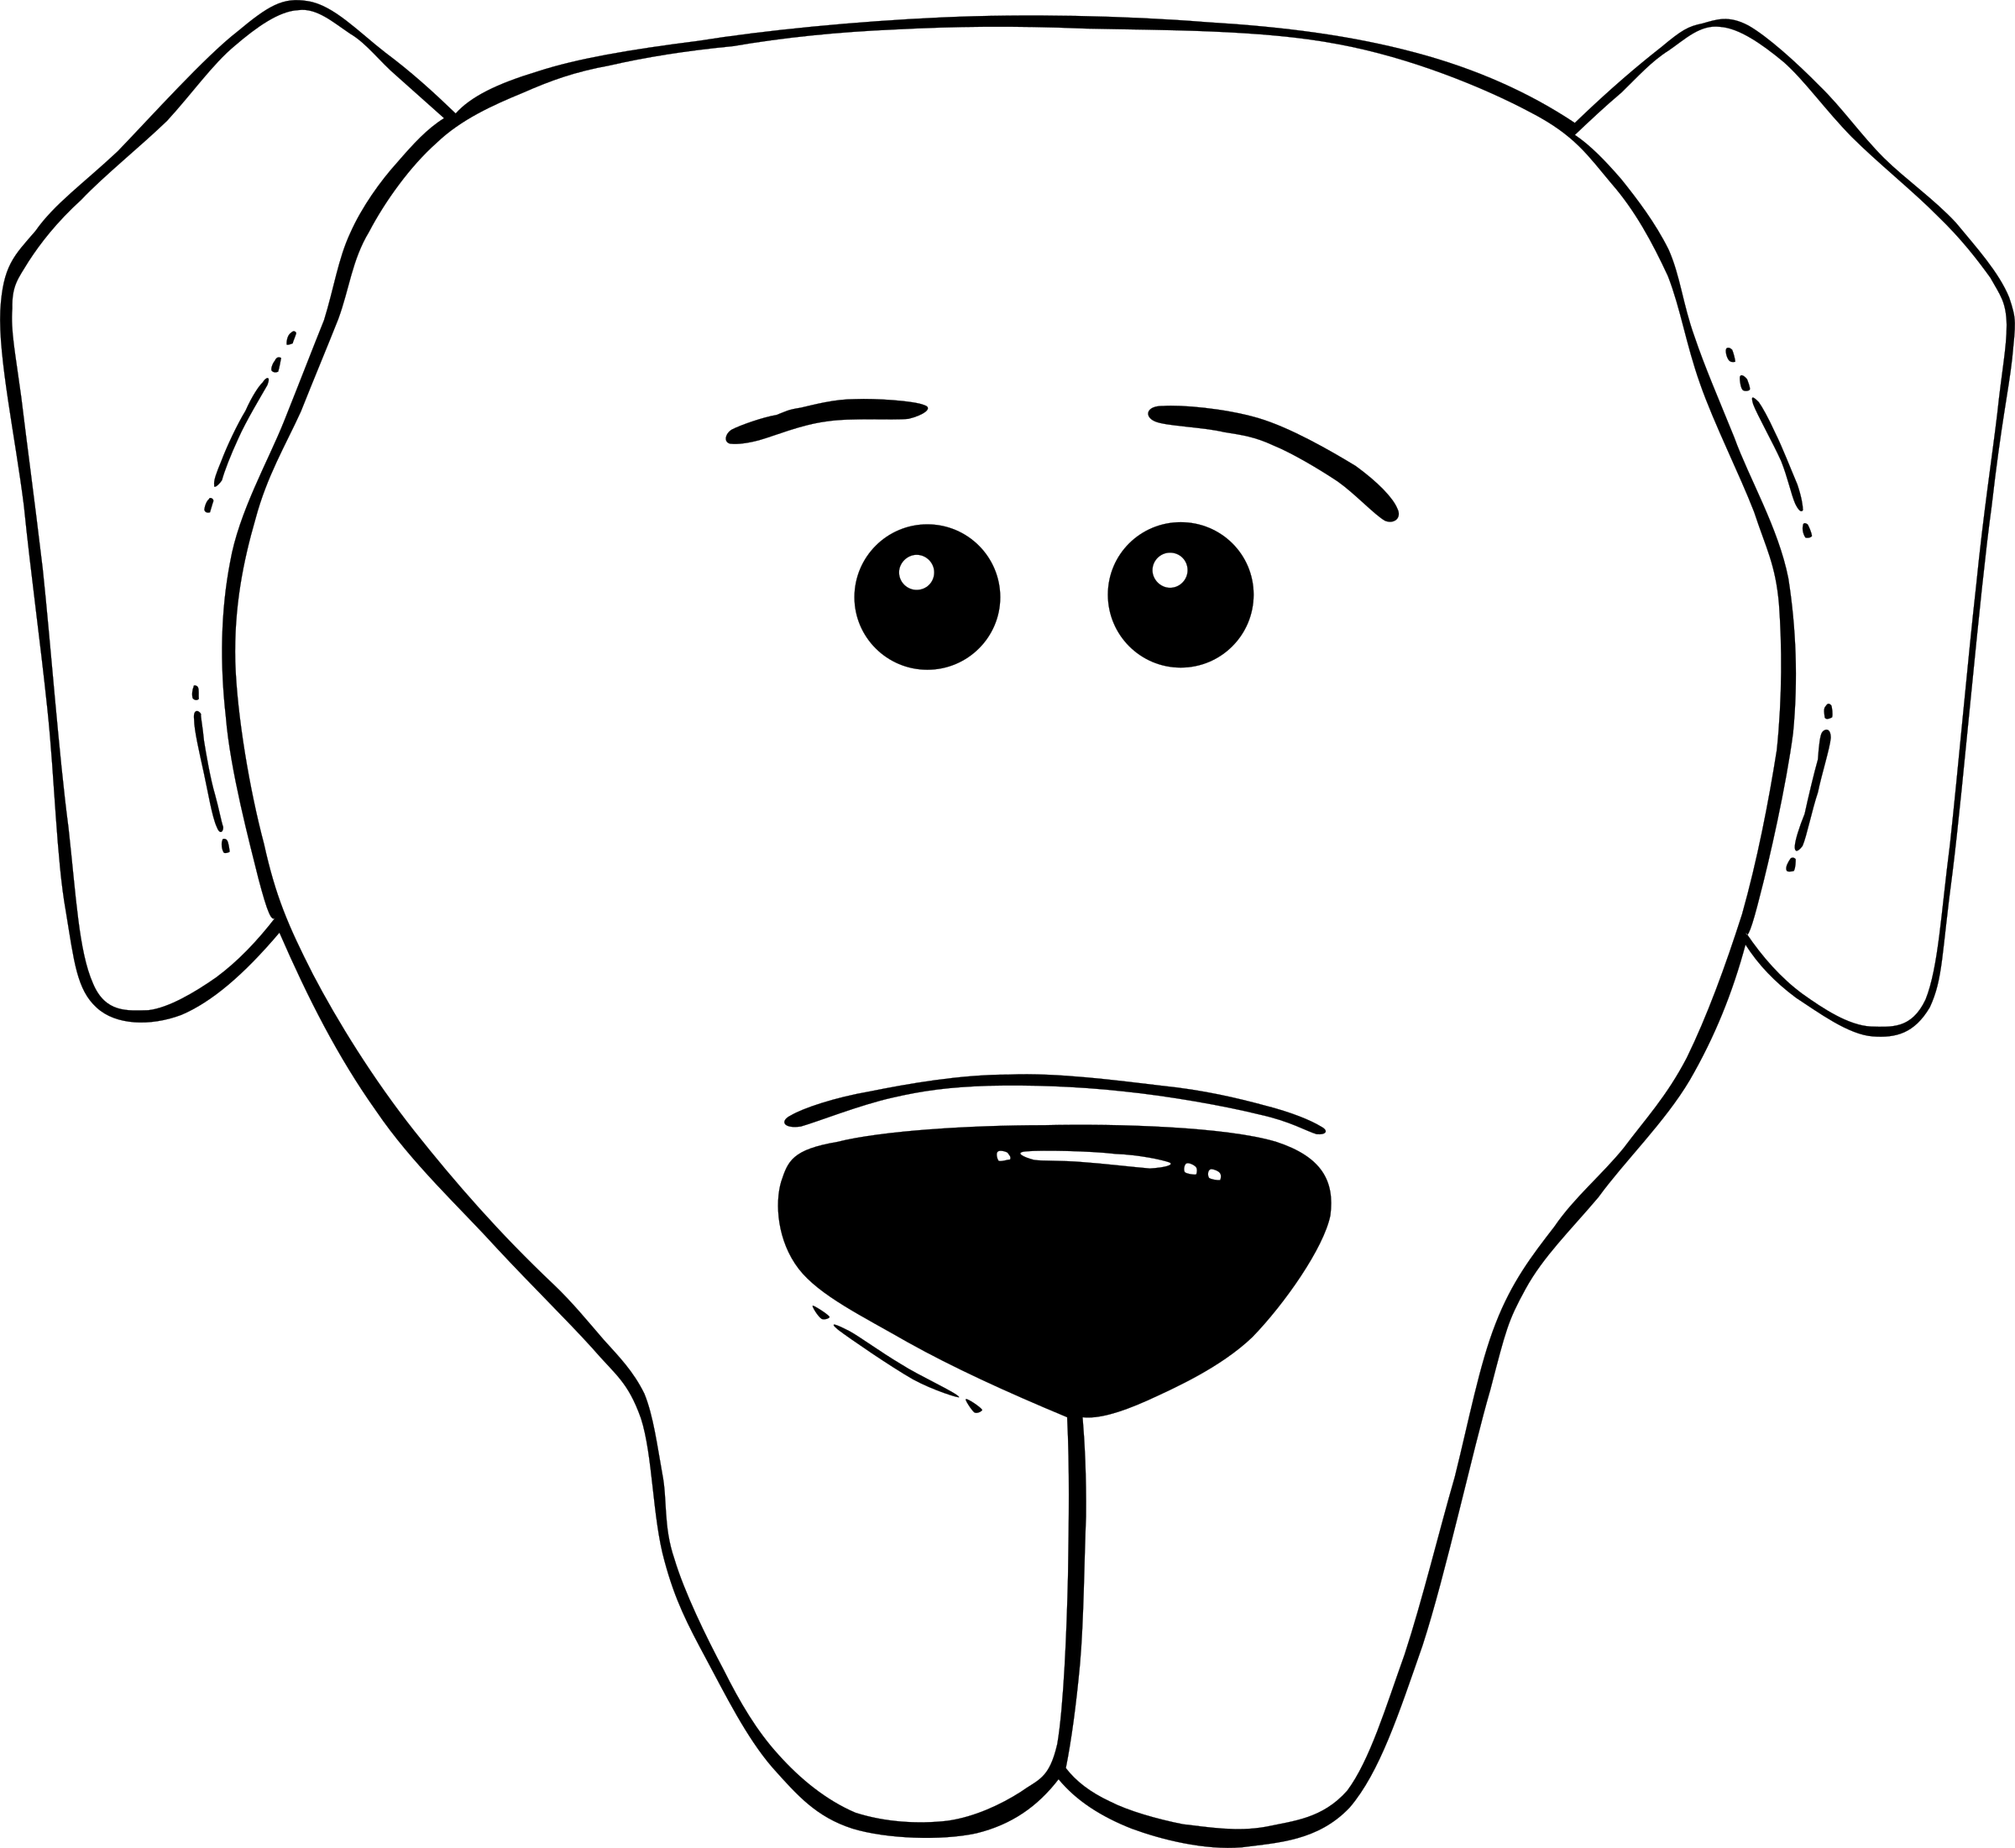 Dog mask clipart. Face cartoon world label